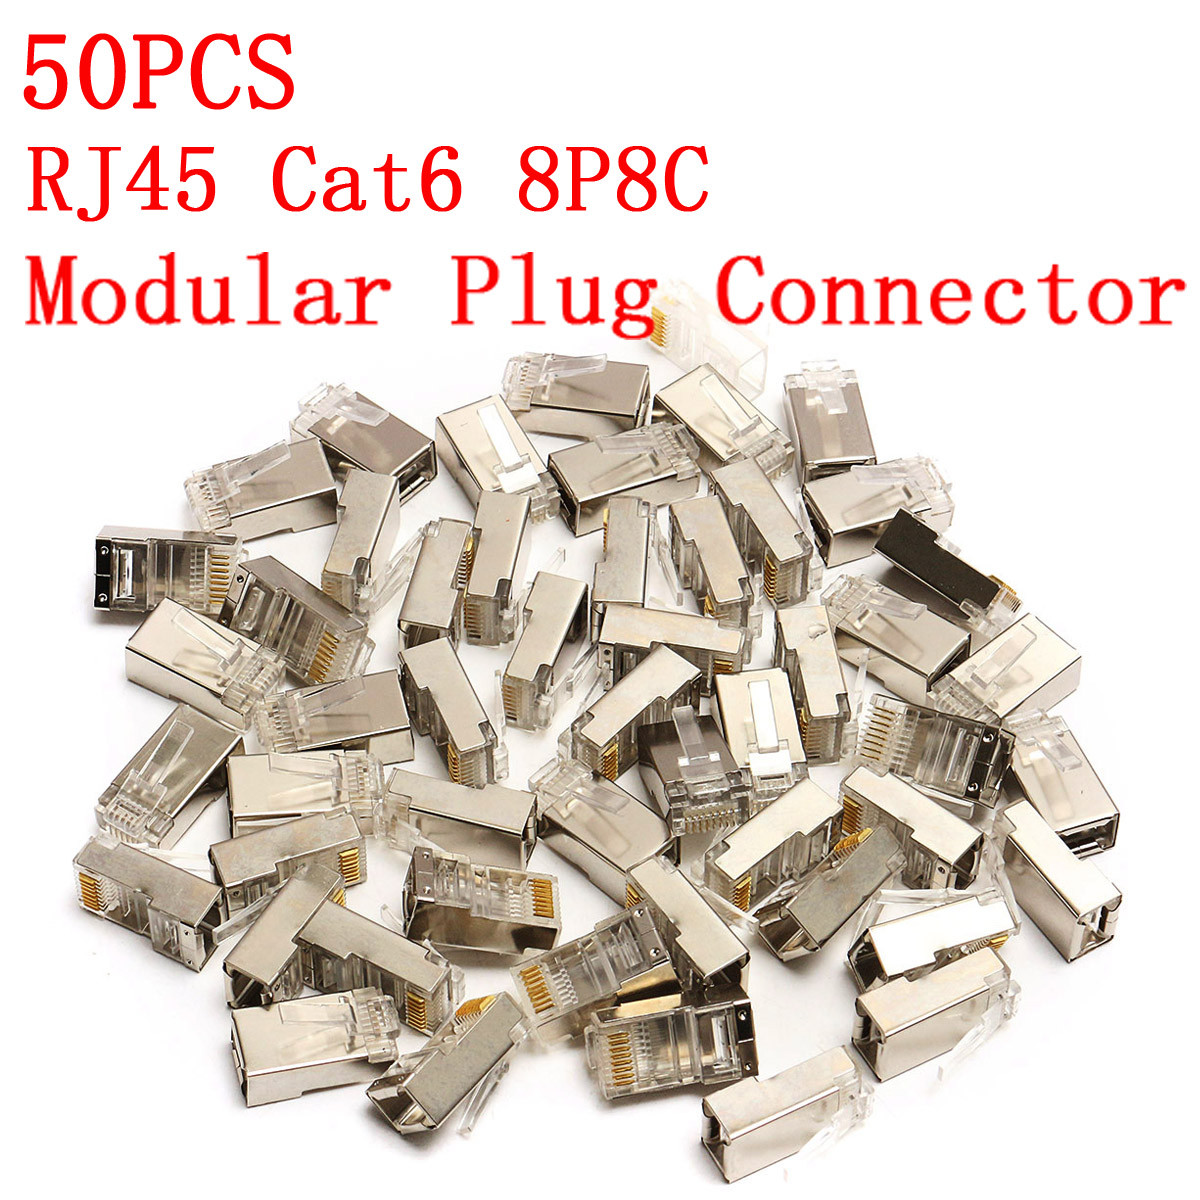 High Quality 50Pcs RJ45 Cat6 Connector 8Pin 8P8C Shielded Stranded Crimp Modular Plug Connectors Socket Internet Connector ff300r17me4 new original